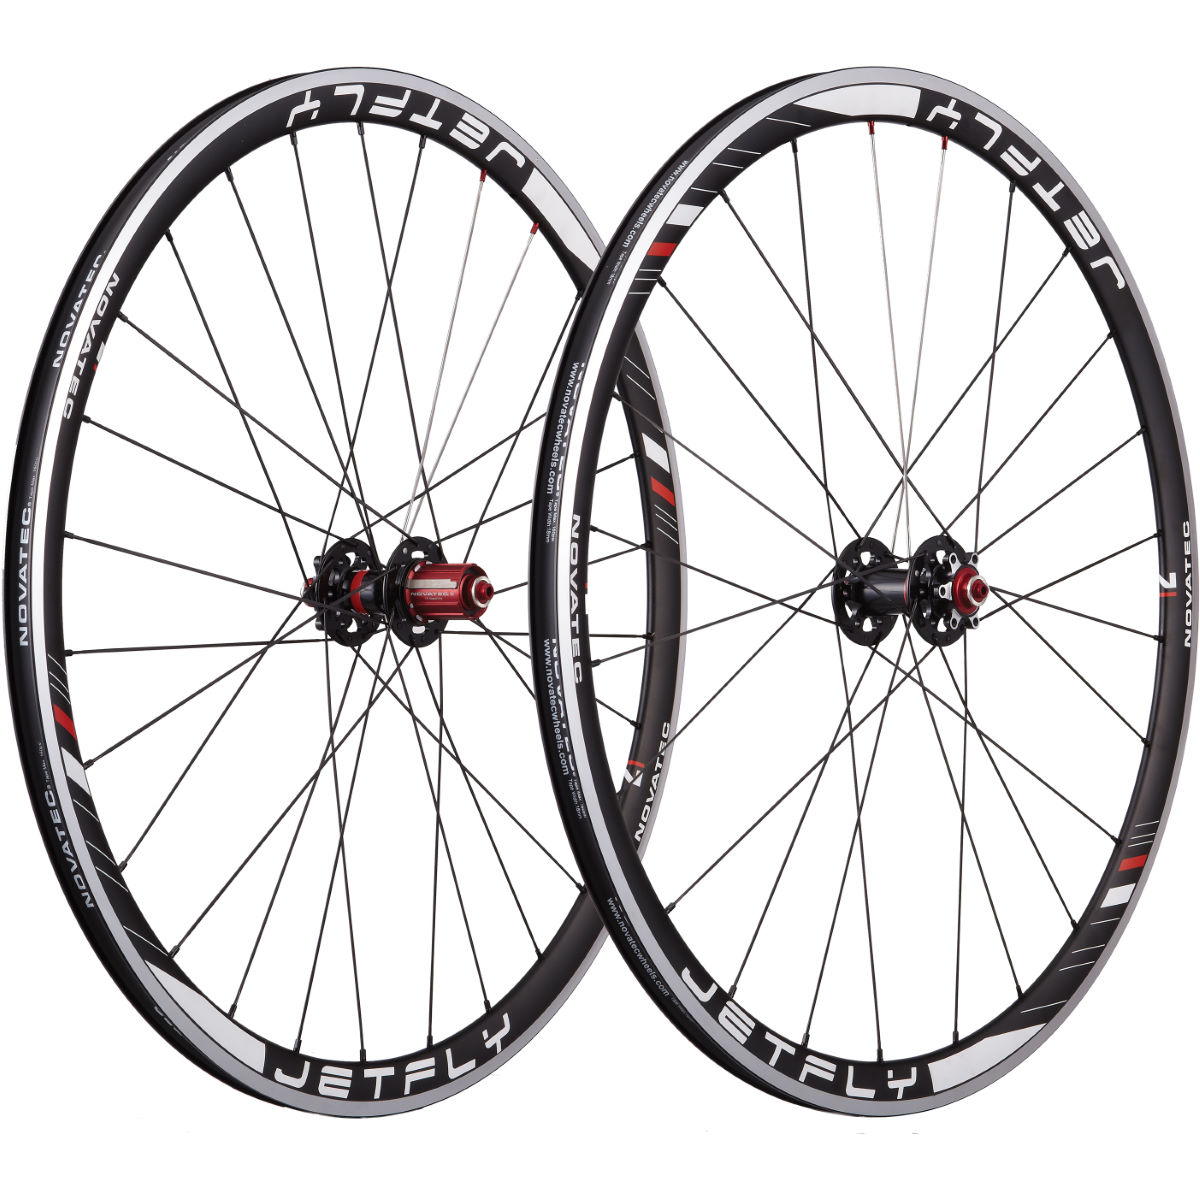 Novatec Jetfly Alloy Clincher Disc Brake Road Wheelset   Performance Wheels